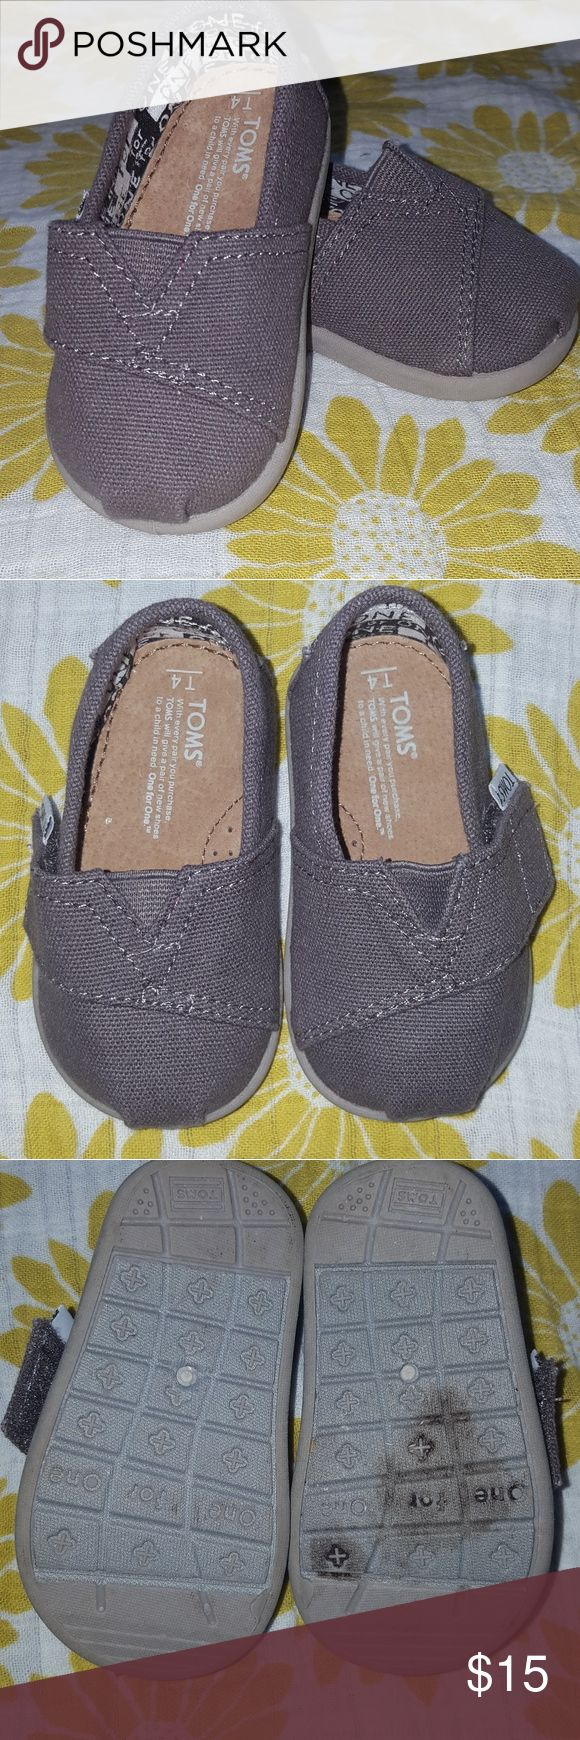 Tiny Toms alpargatas classic alpargatas size T4. brown/gray color. In perfect condition except for the stain on the bottom. Toms Shoes